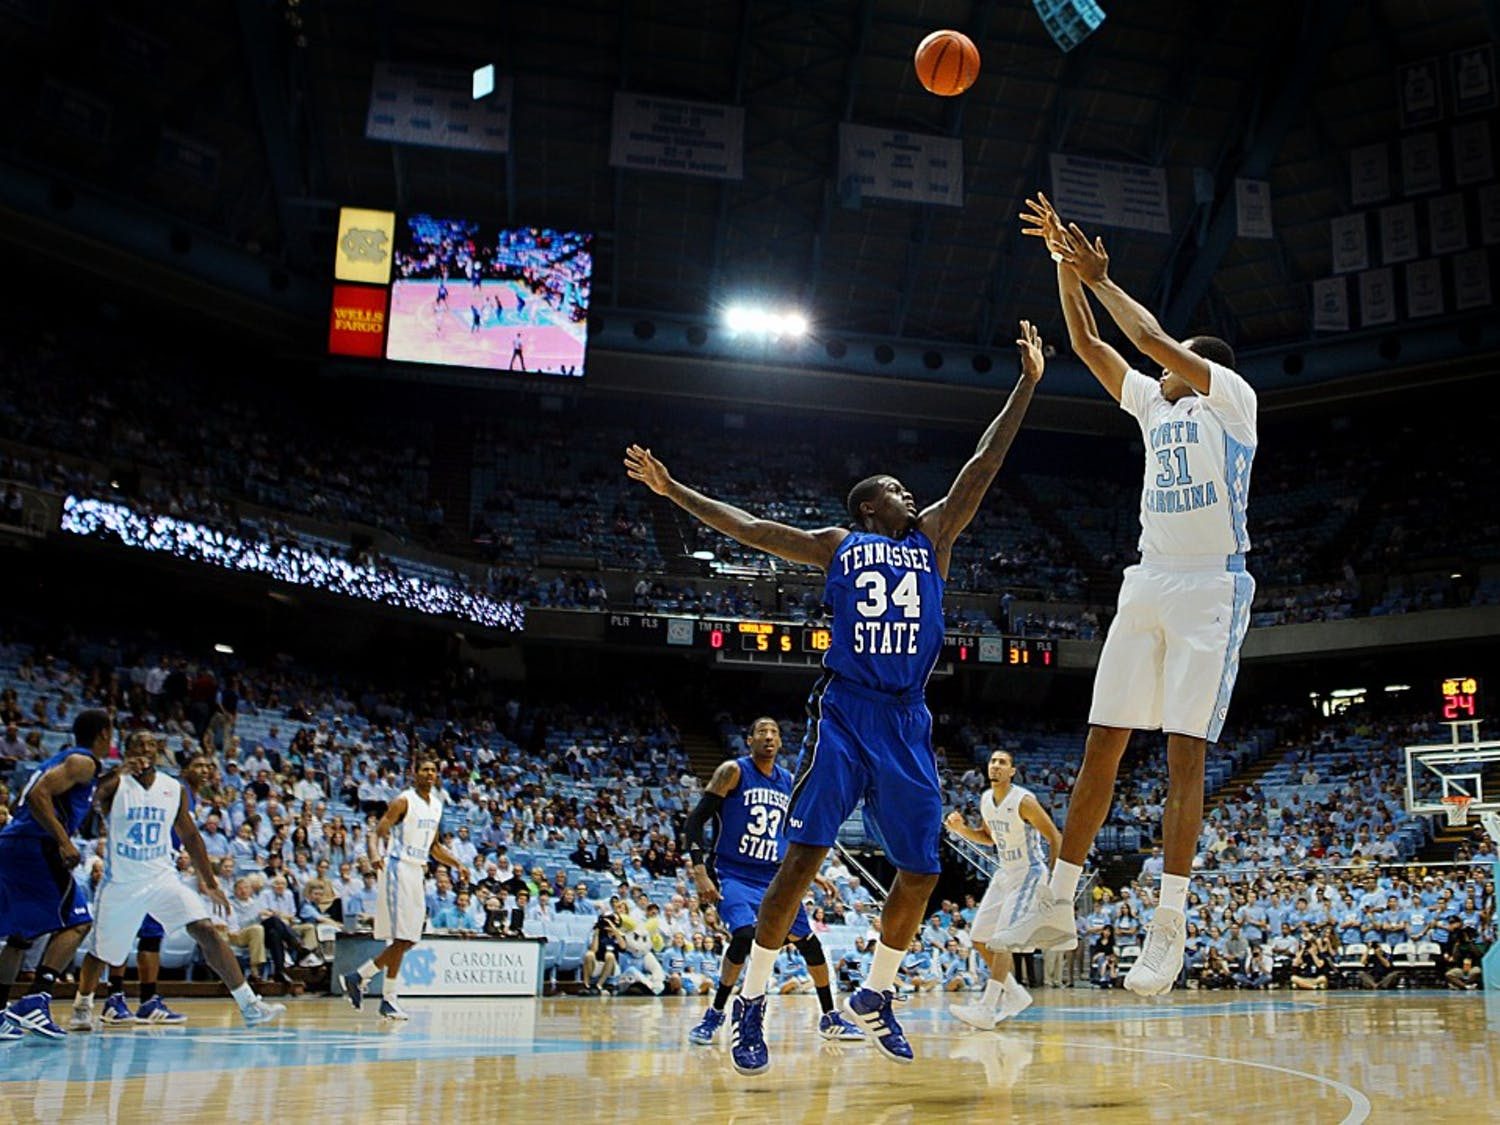 UNC forward John Henson shoots a jump shot during the game against Tennessee State.